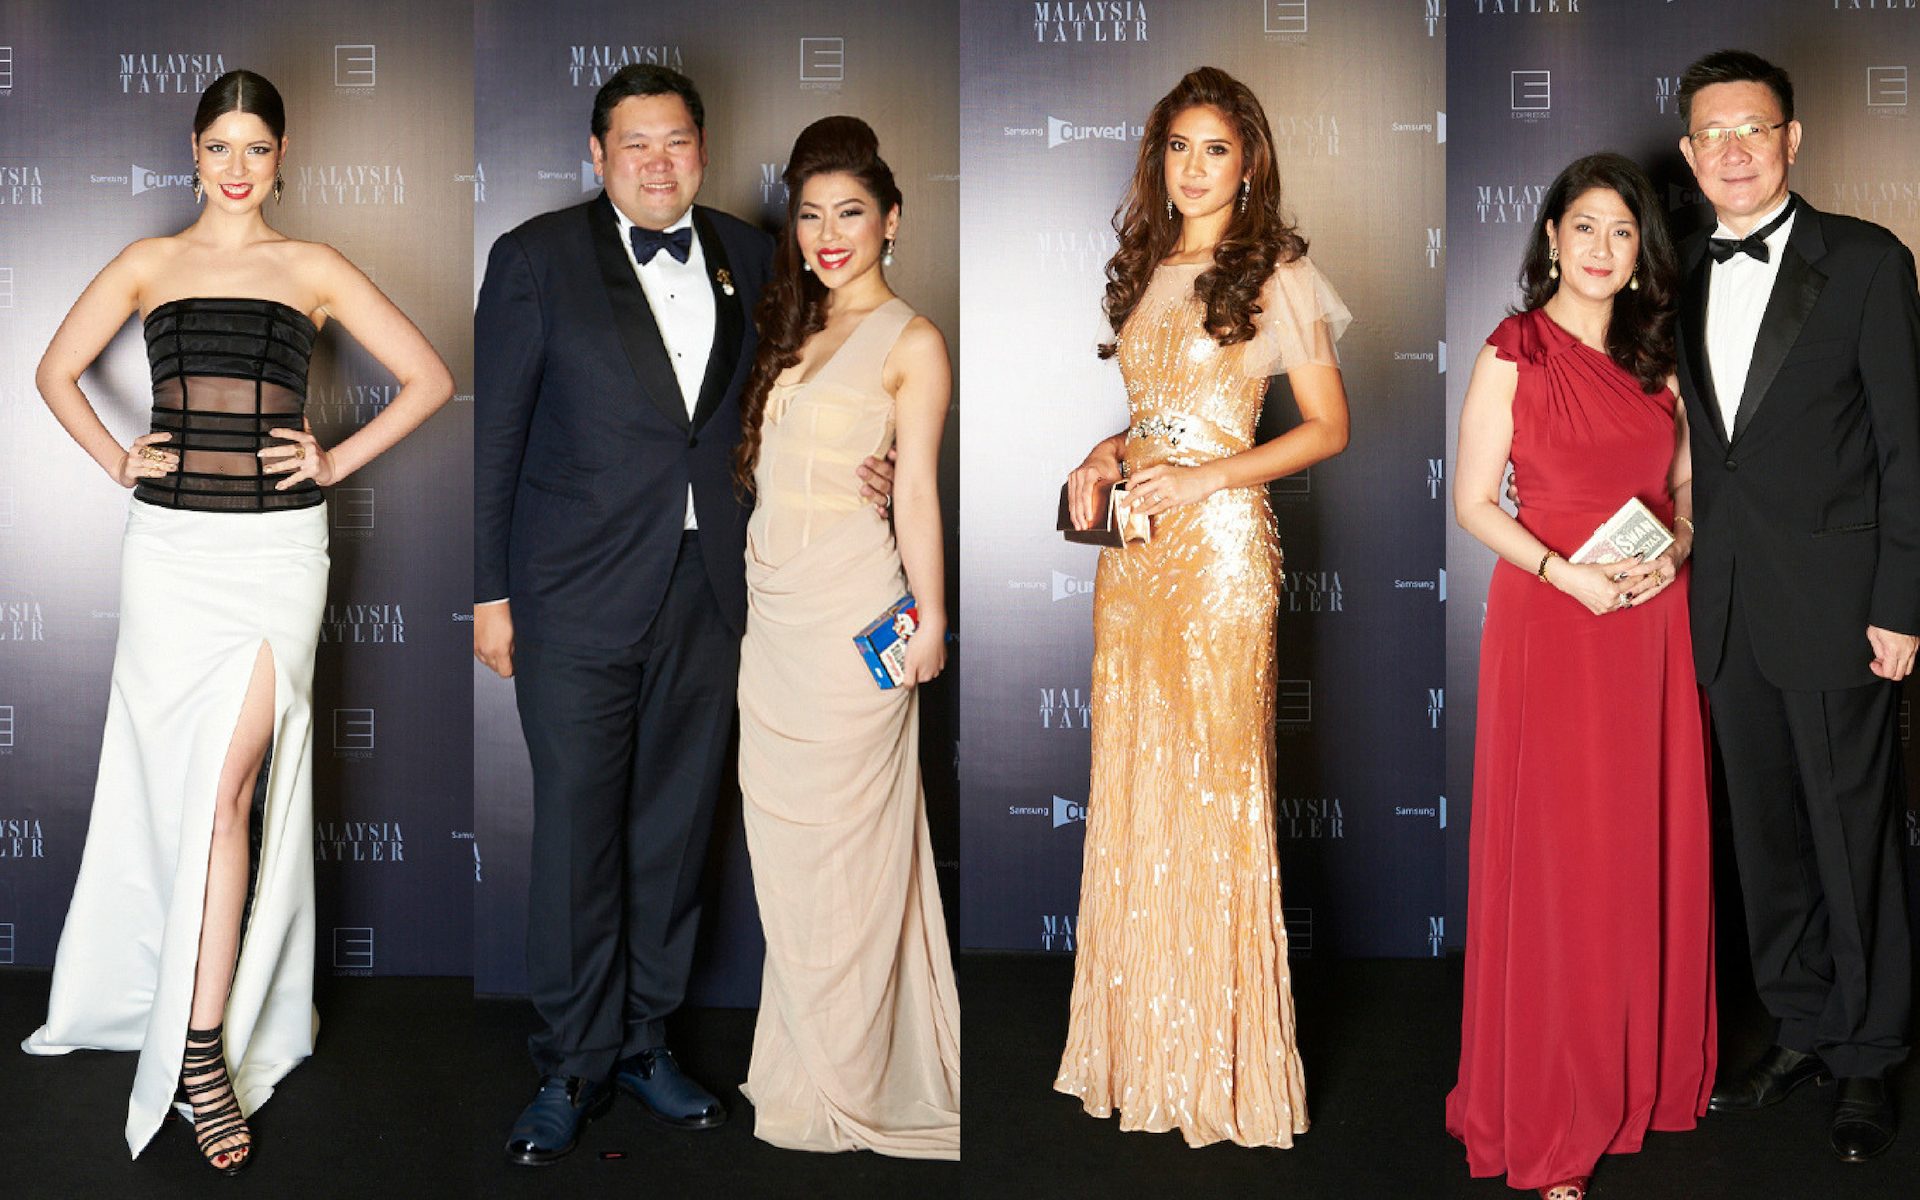 Yong Mei Ling in Jonathan Cheng, Elizabeth Lee-Yong in Jonathan Liang, Raja Jesrina Arshad in Michael Ong and Soo Shea Pin in KK Ng